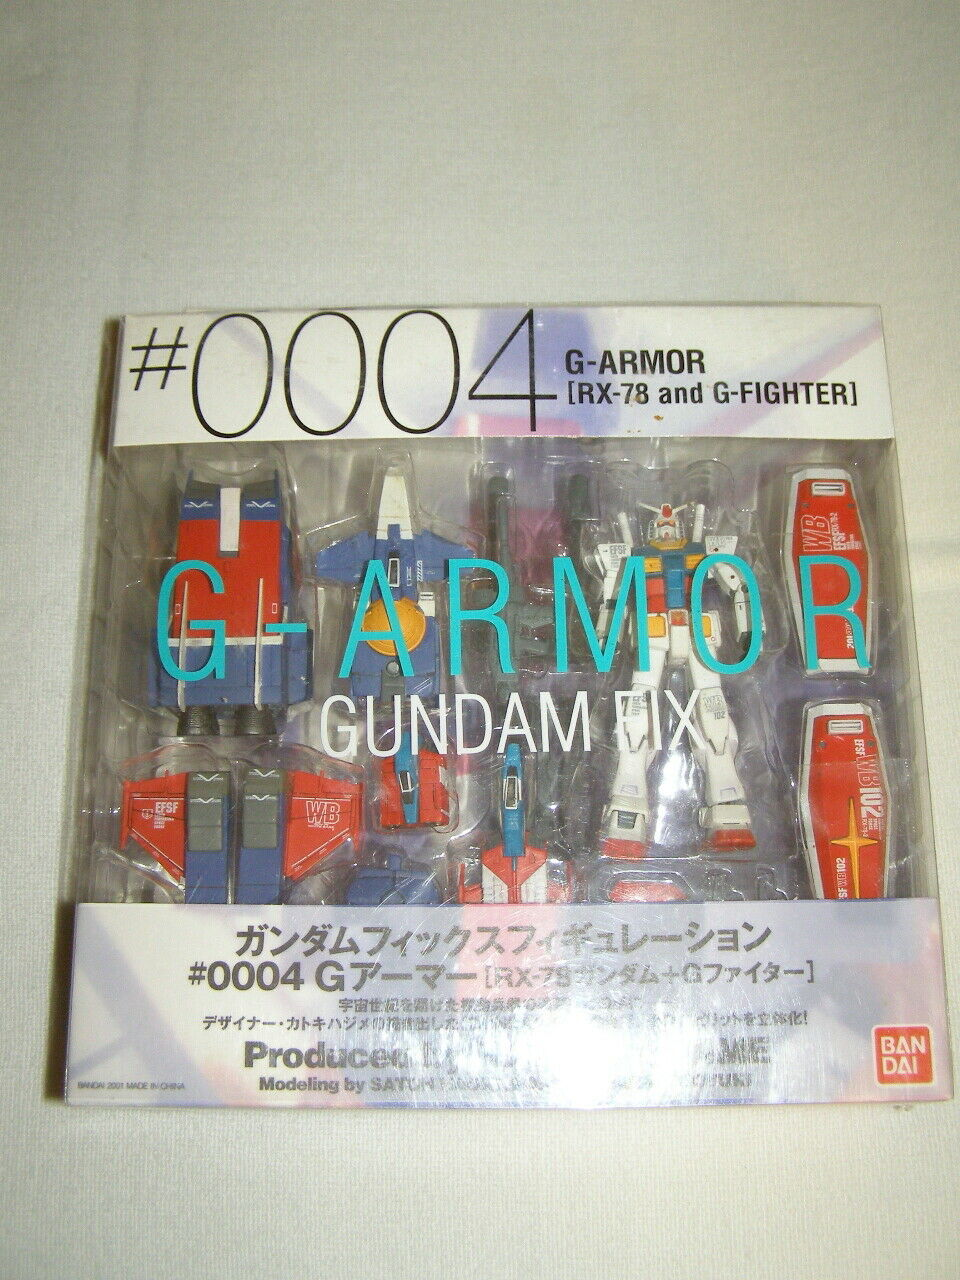 0004 Gundam FIX Figuration G-Armor (RX-78 and G-Fighter) action figure